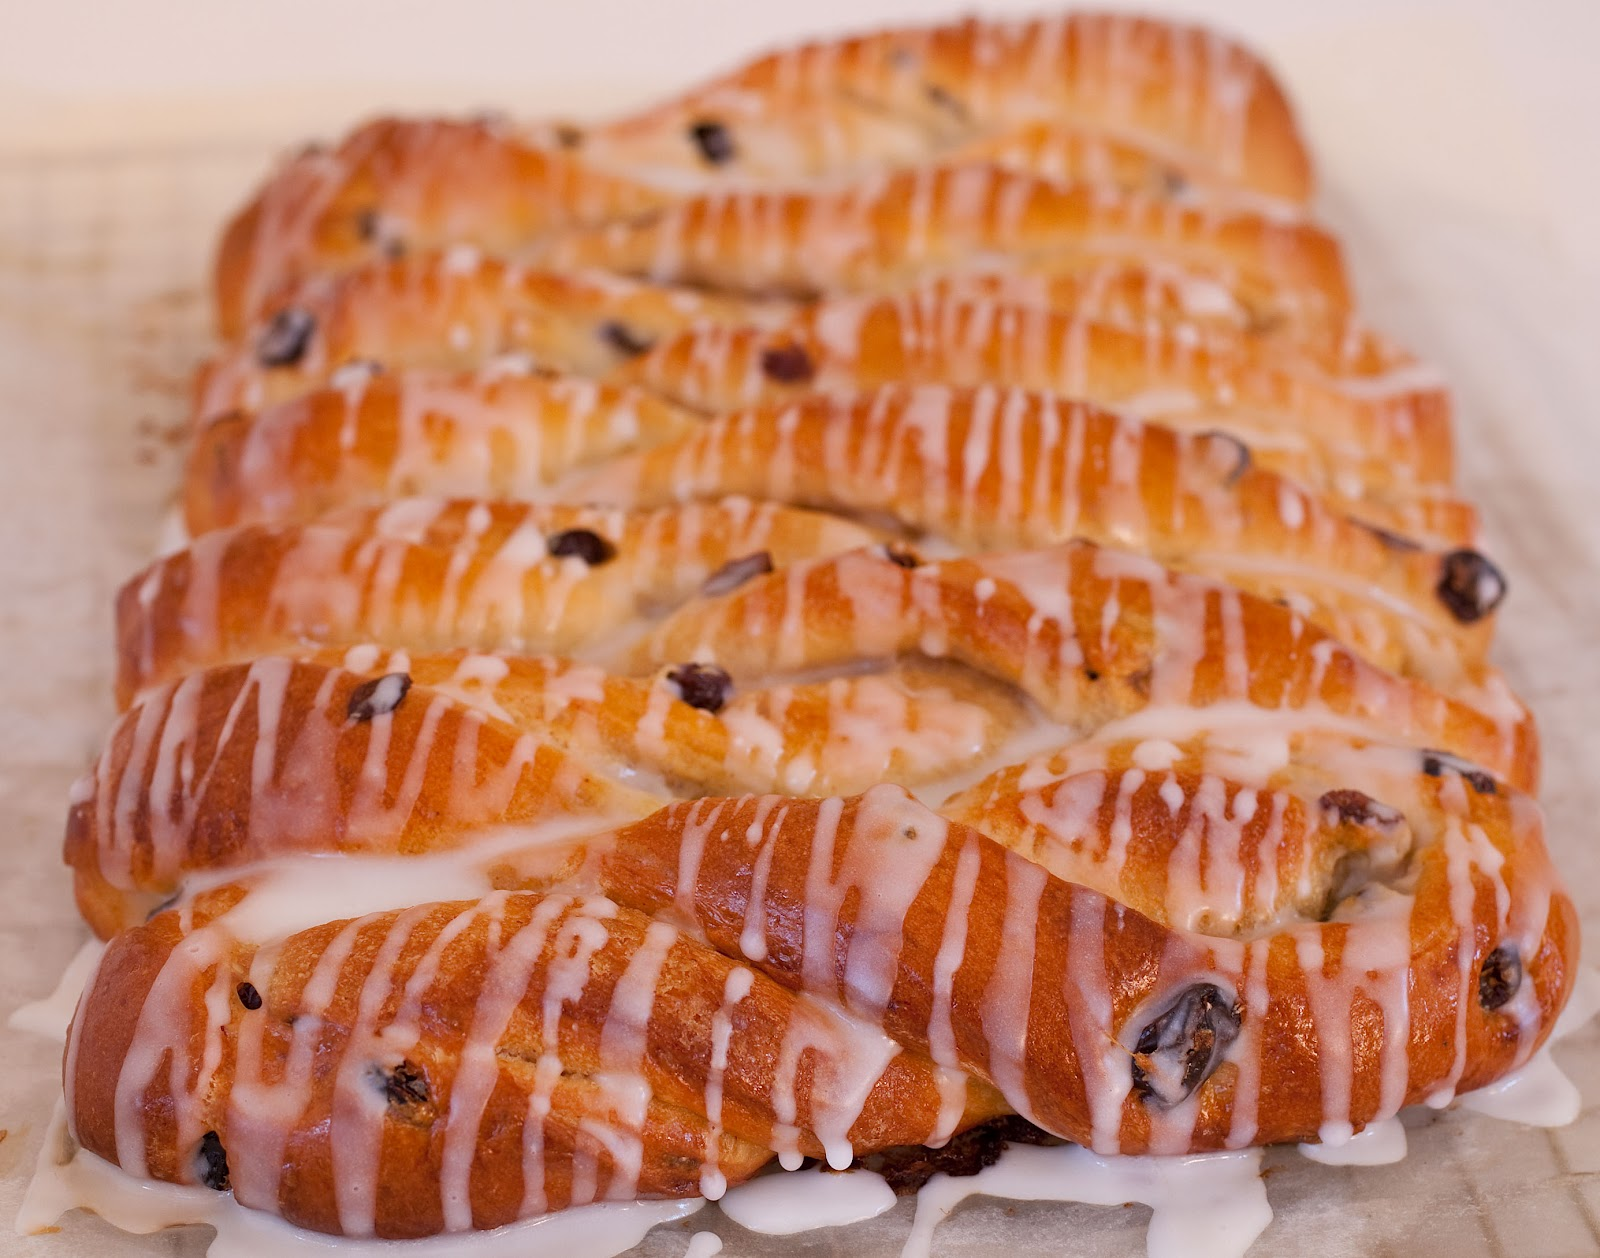 Tish Boyle Sweet Dreams: Cinnamon Raisin Twists from Amy's Bread